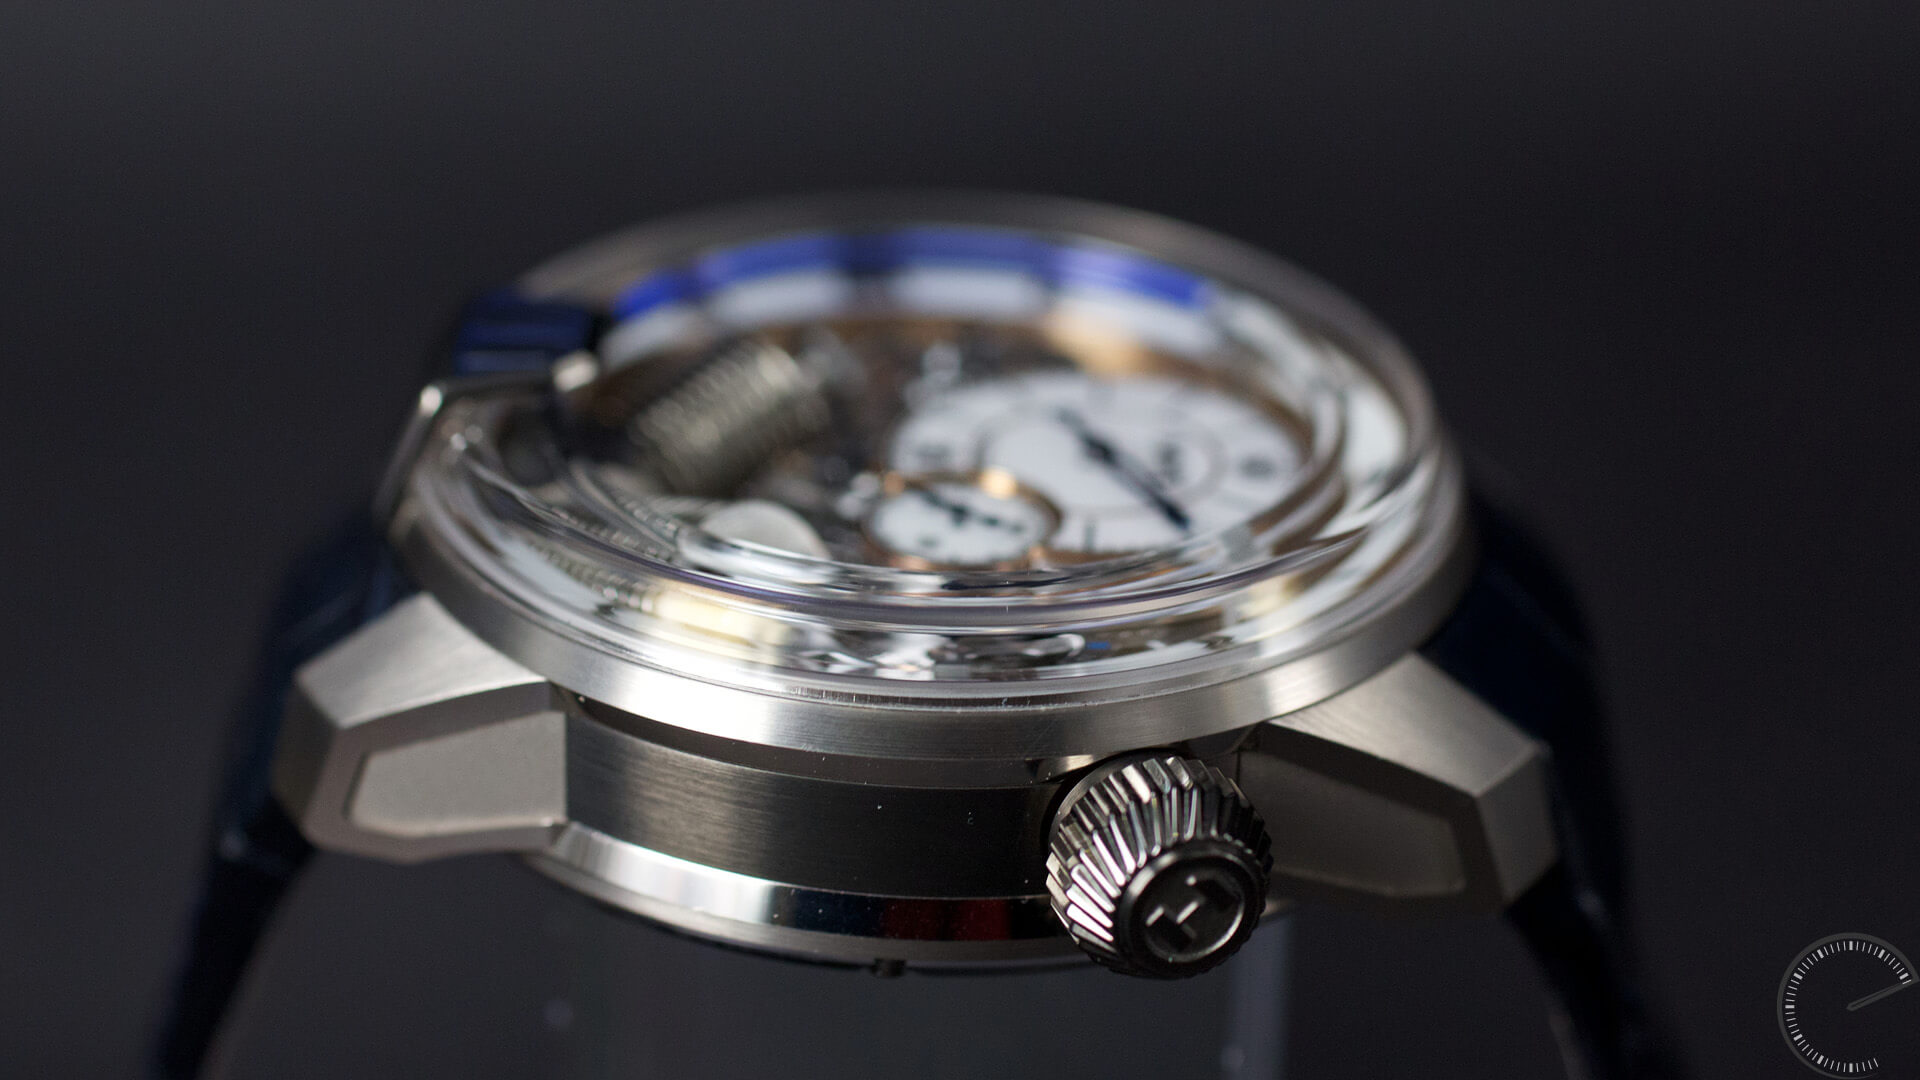 HYT_H2_Tradition_crown- ESCAPEMENT Magazine - watch reviews by Angus Davies